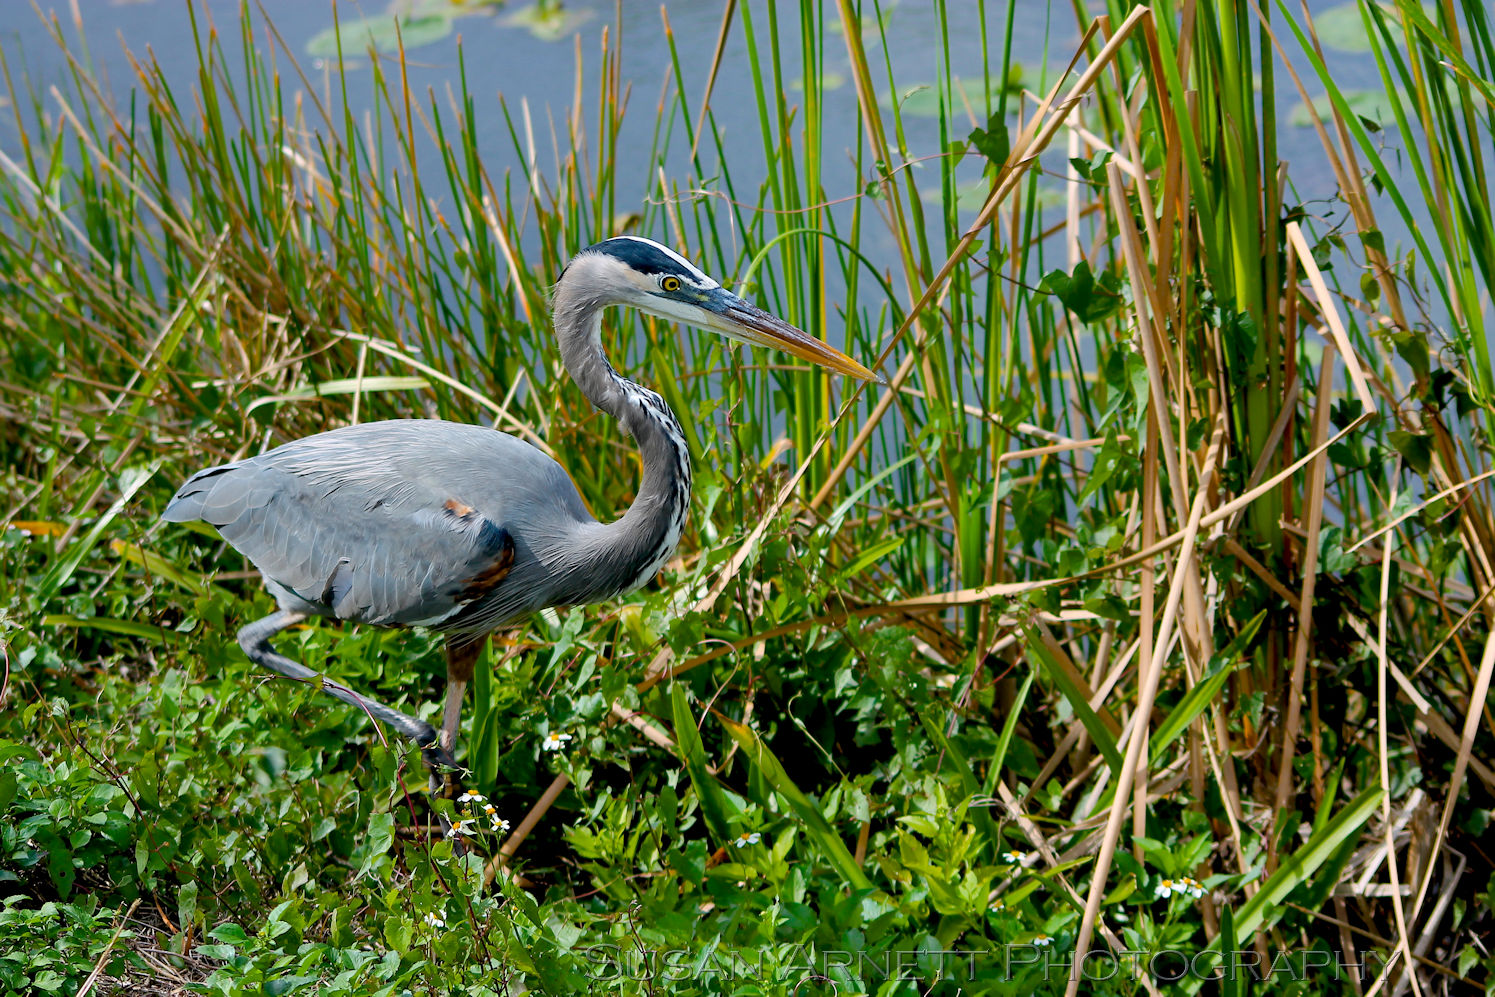 A Great Blue Heron hunts in the Florida Everglades for its next meal.